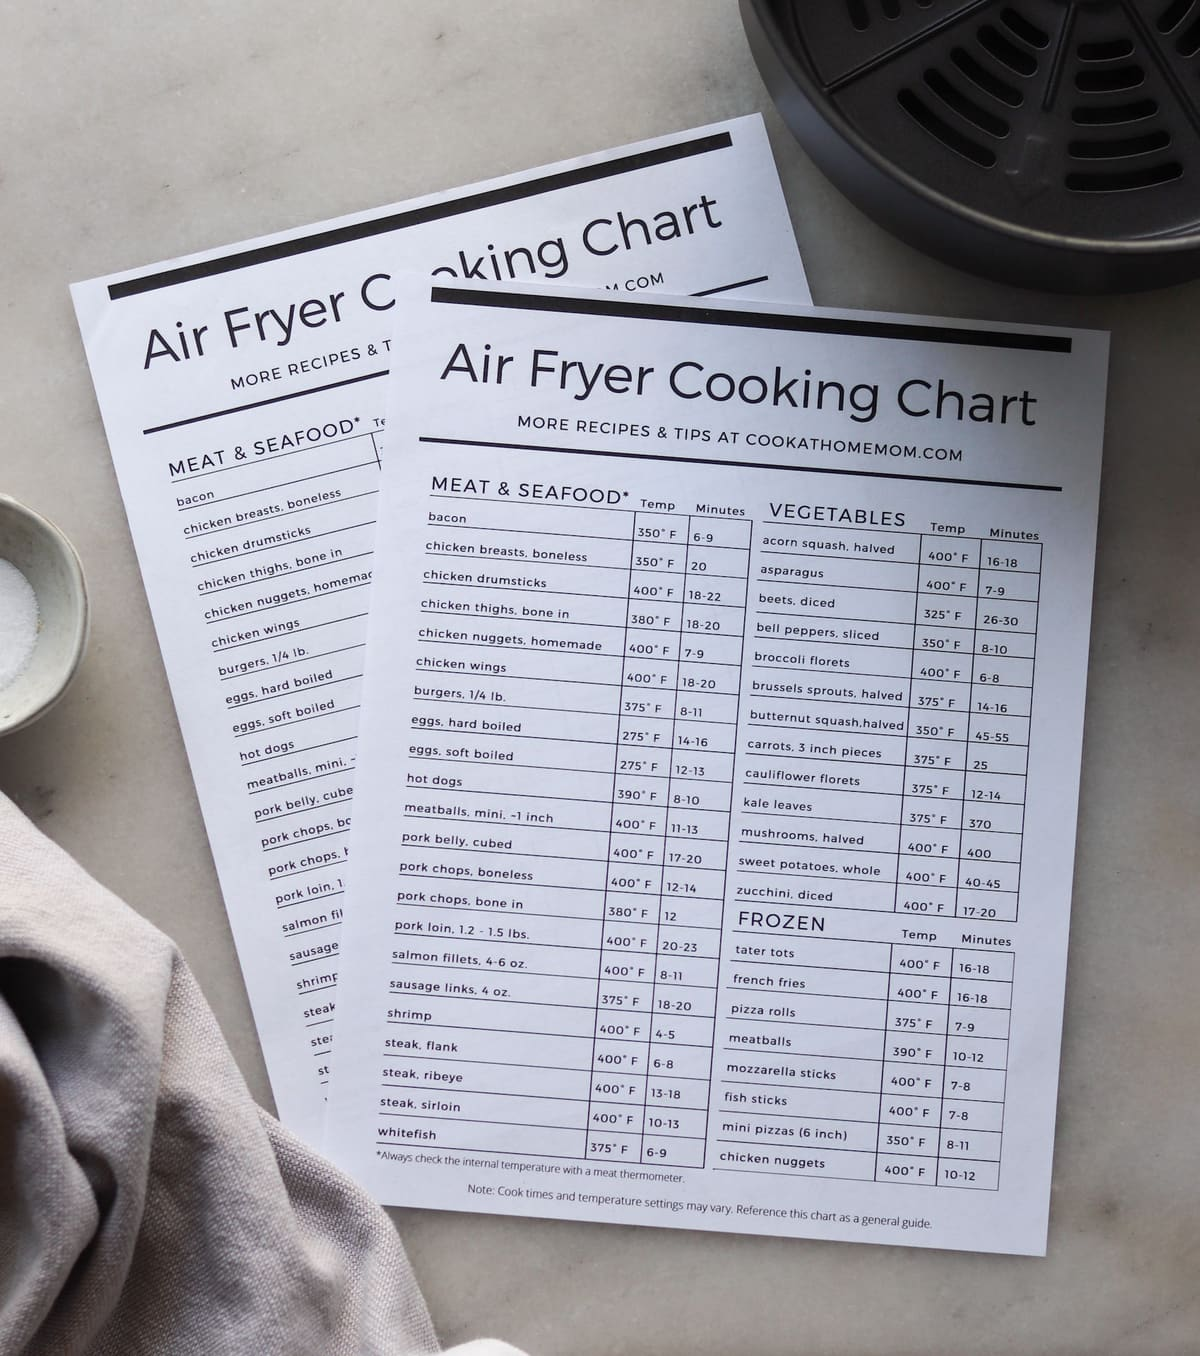 Two printed air fryer cooking charts on a white marble board beside an air fryer basket and kitchen towel.